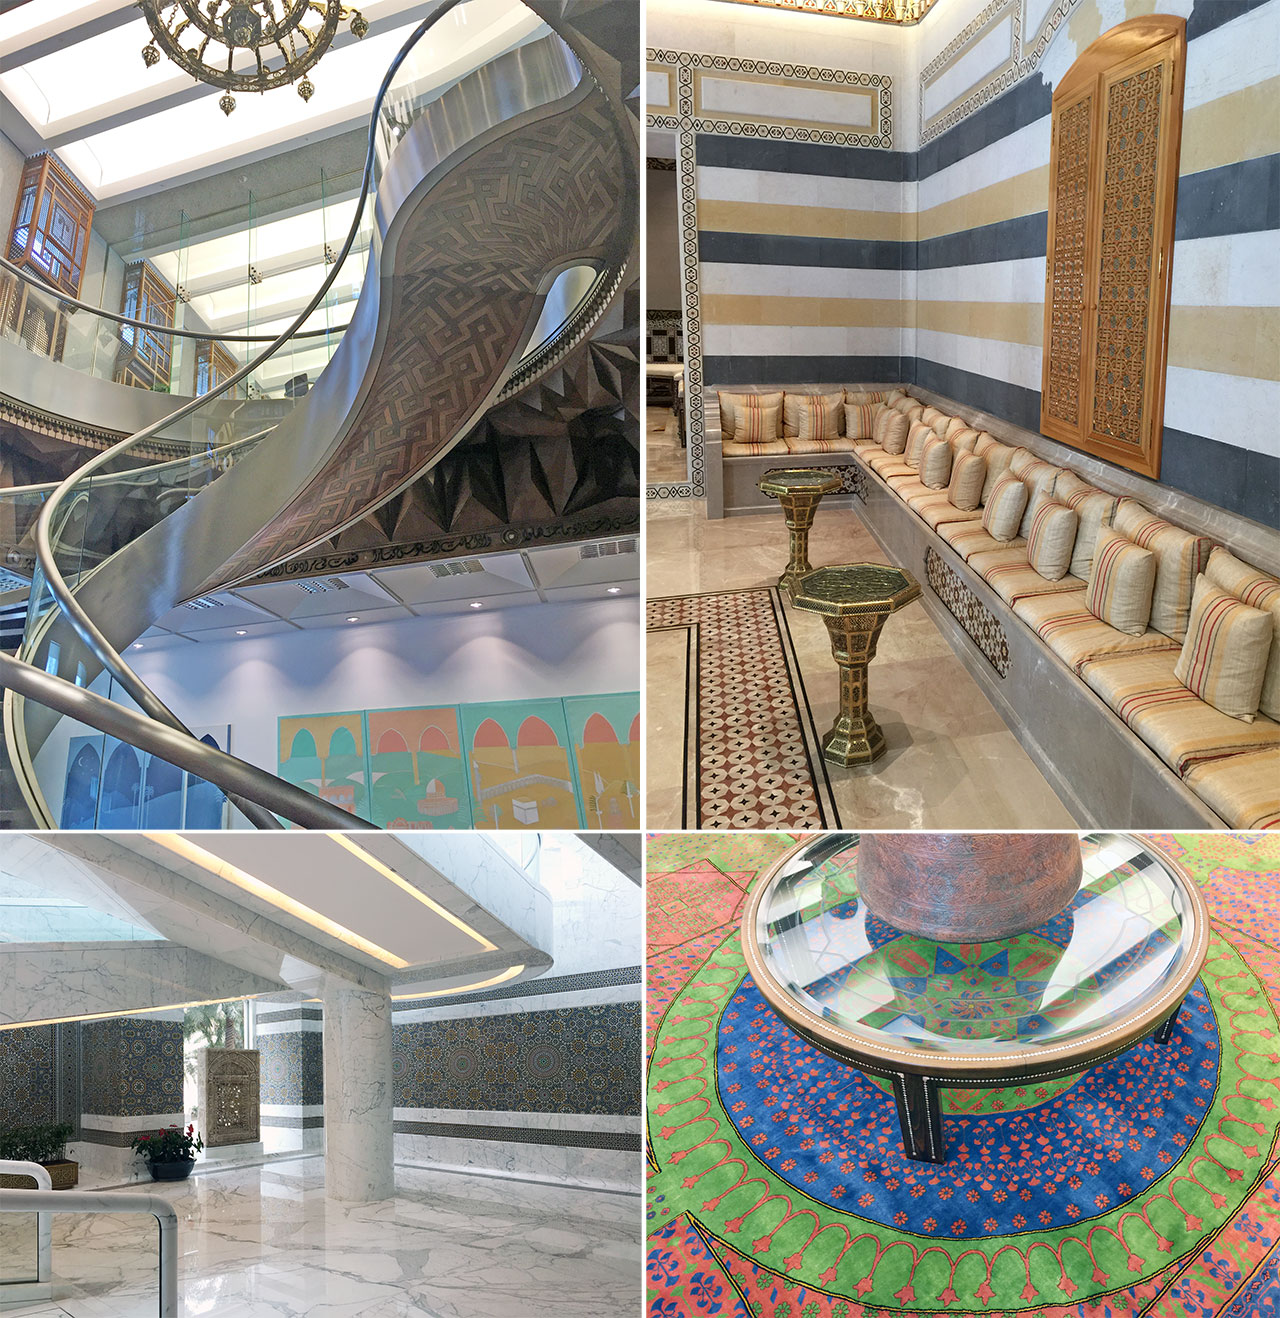 Various spaces in the Arab Fund Building